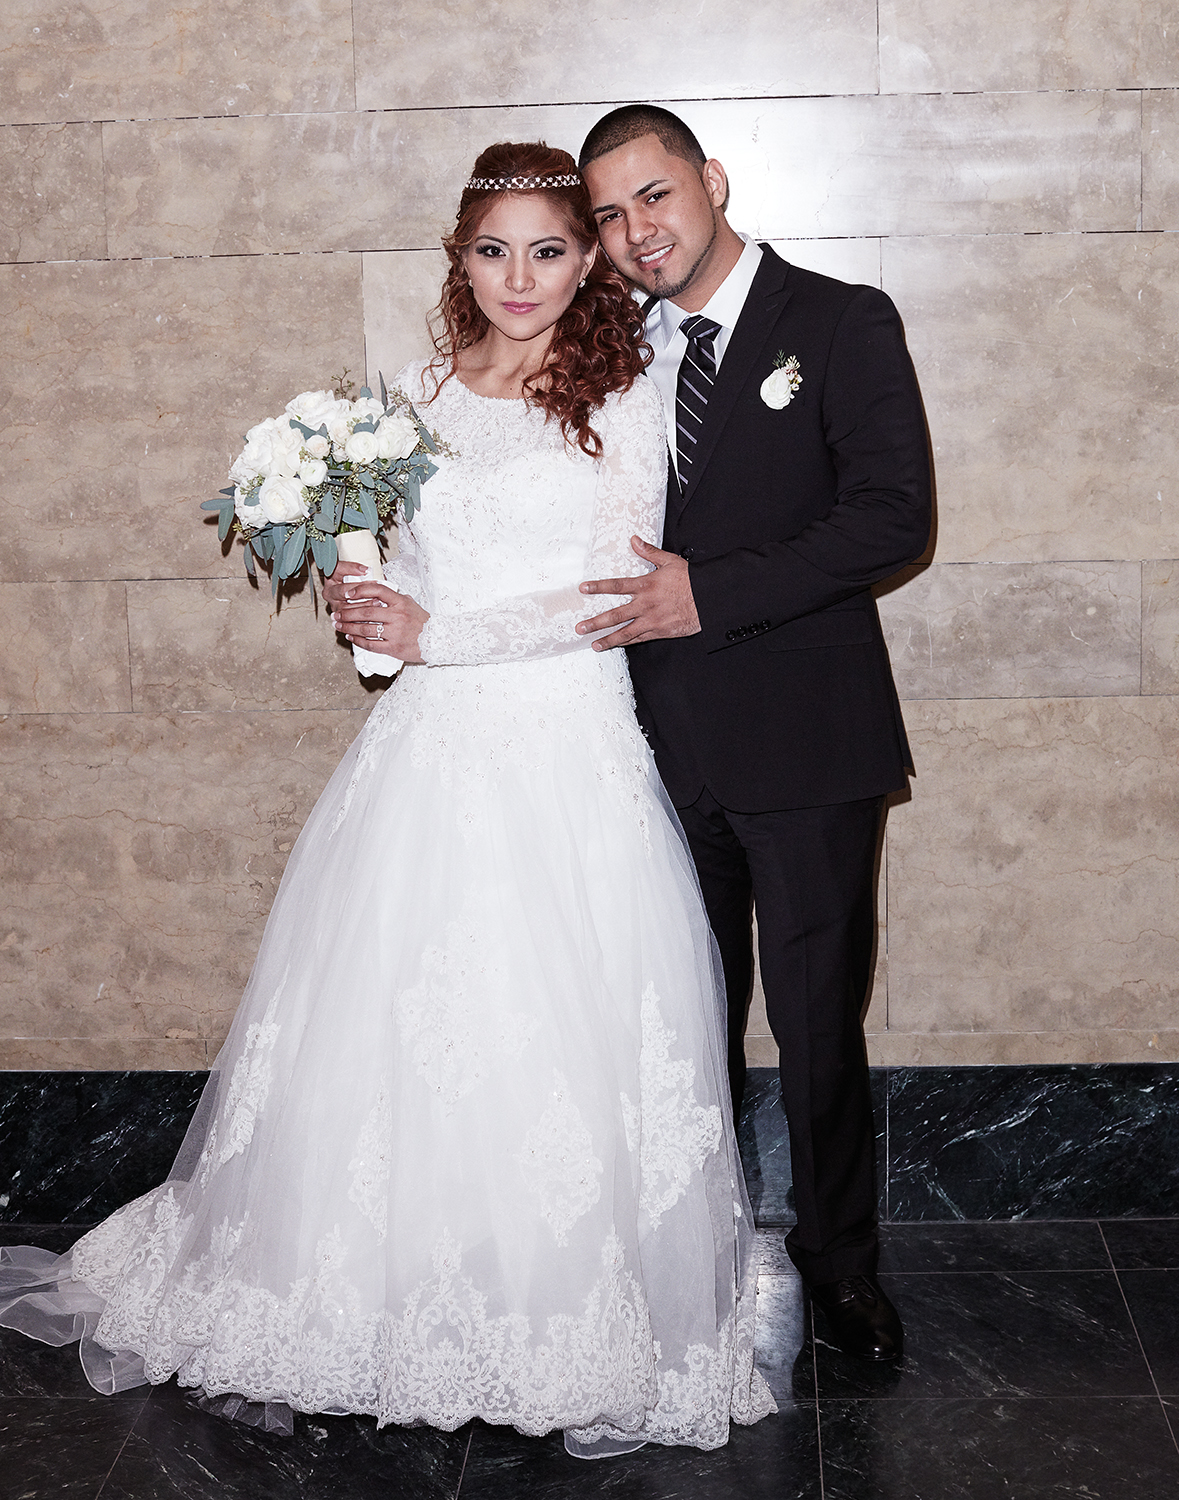 Jessy and Renzo, just married at the City Clerk's Office, Manhattan Feb. 12th, 2016, Yahoo Style Feature Feb 2016